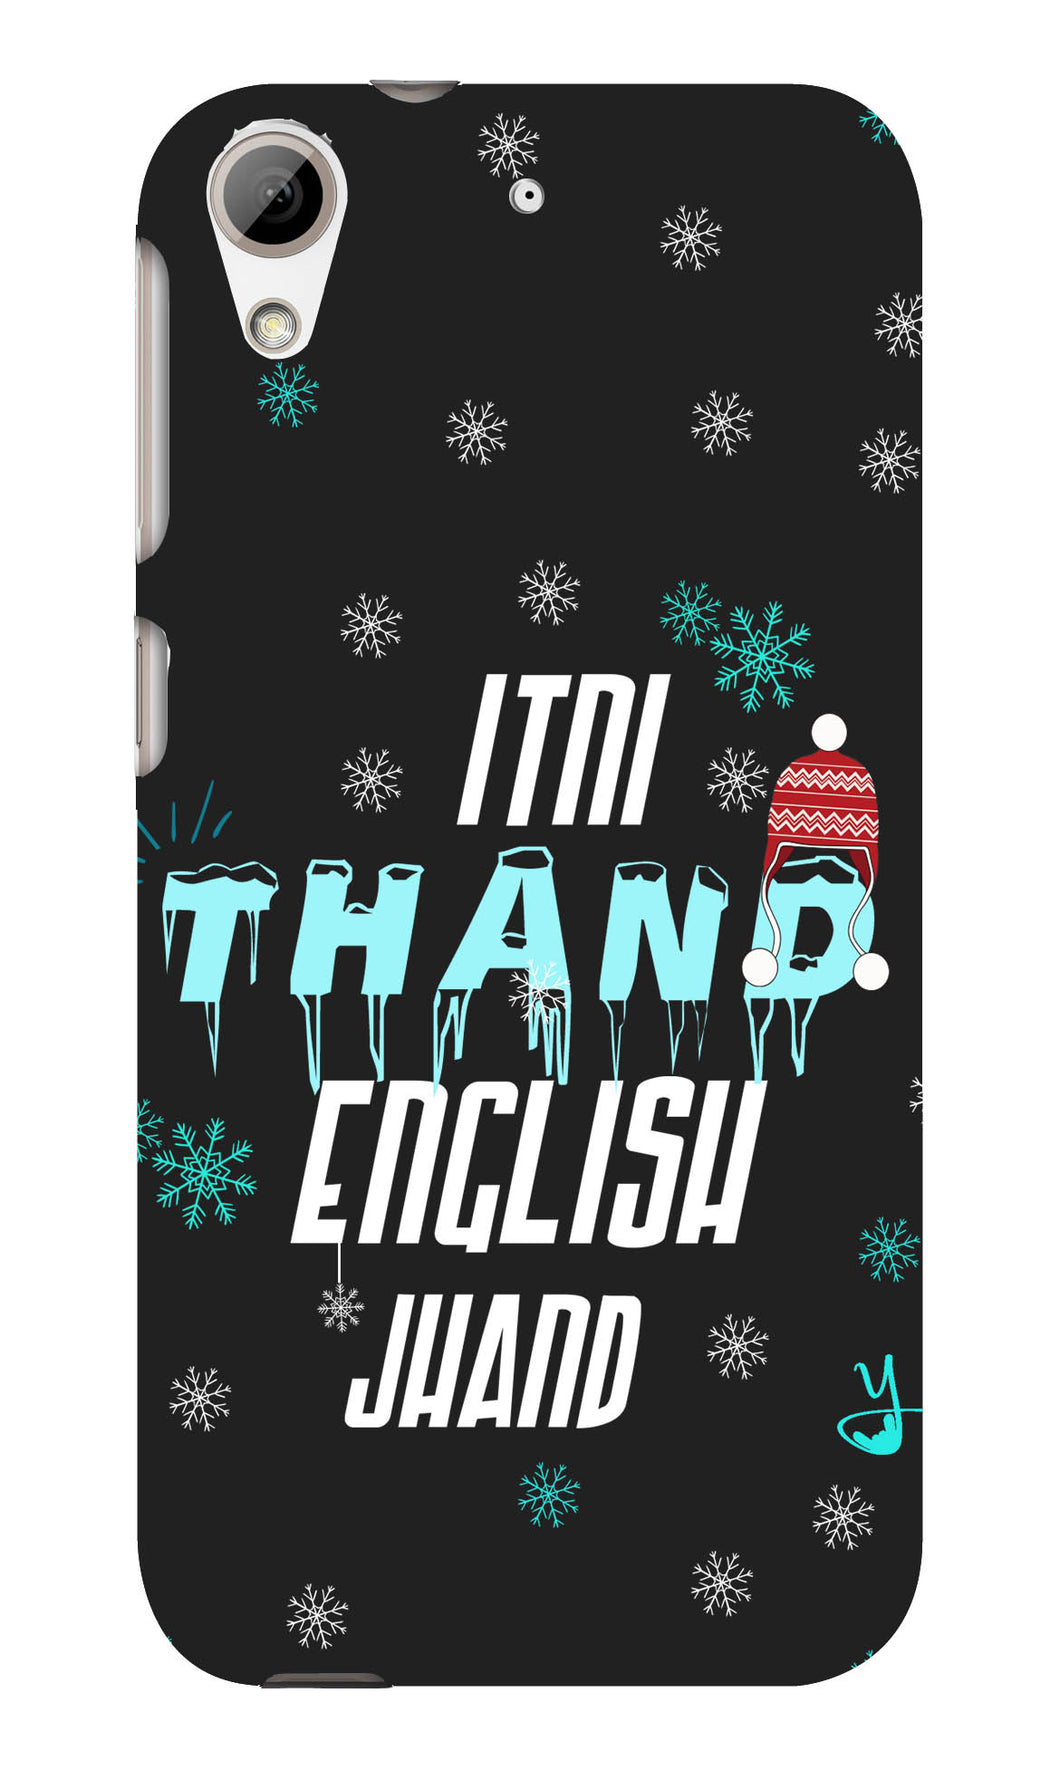 Itni Thand edition for htc desire 626